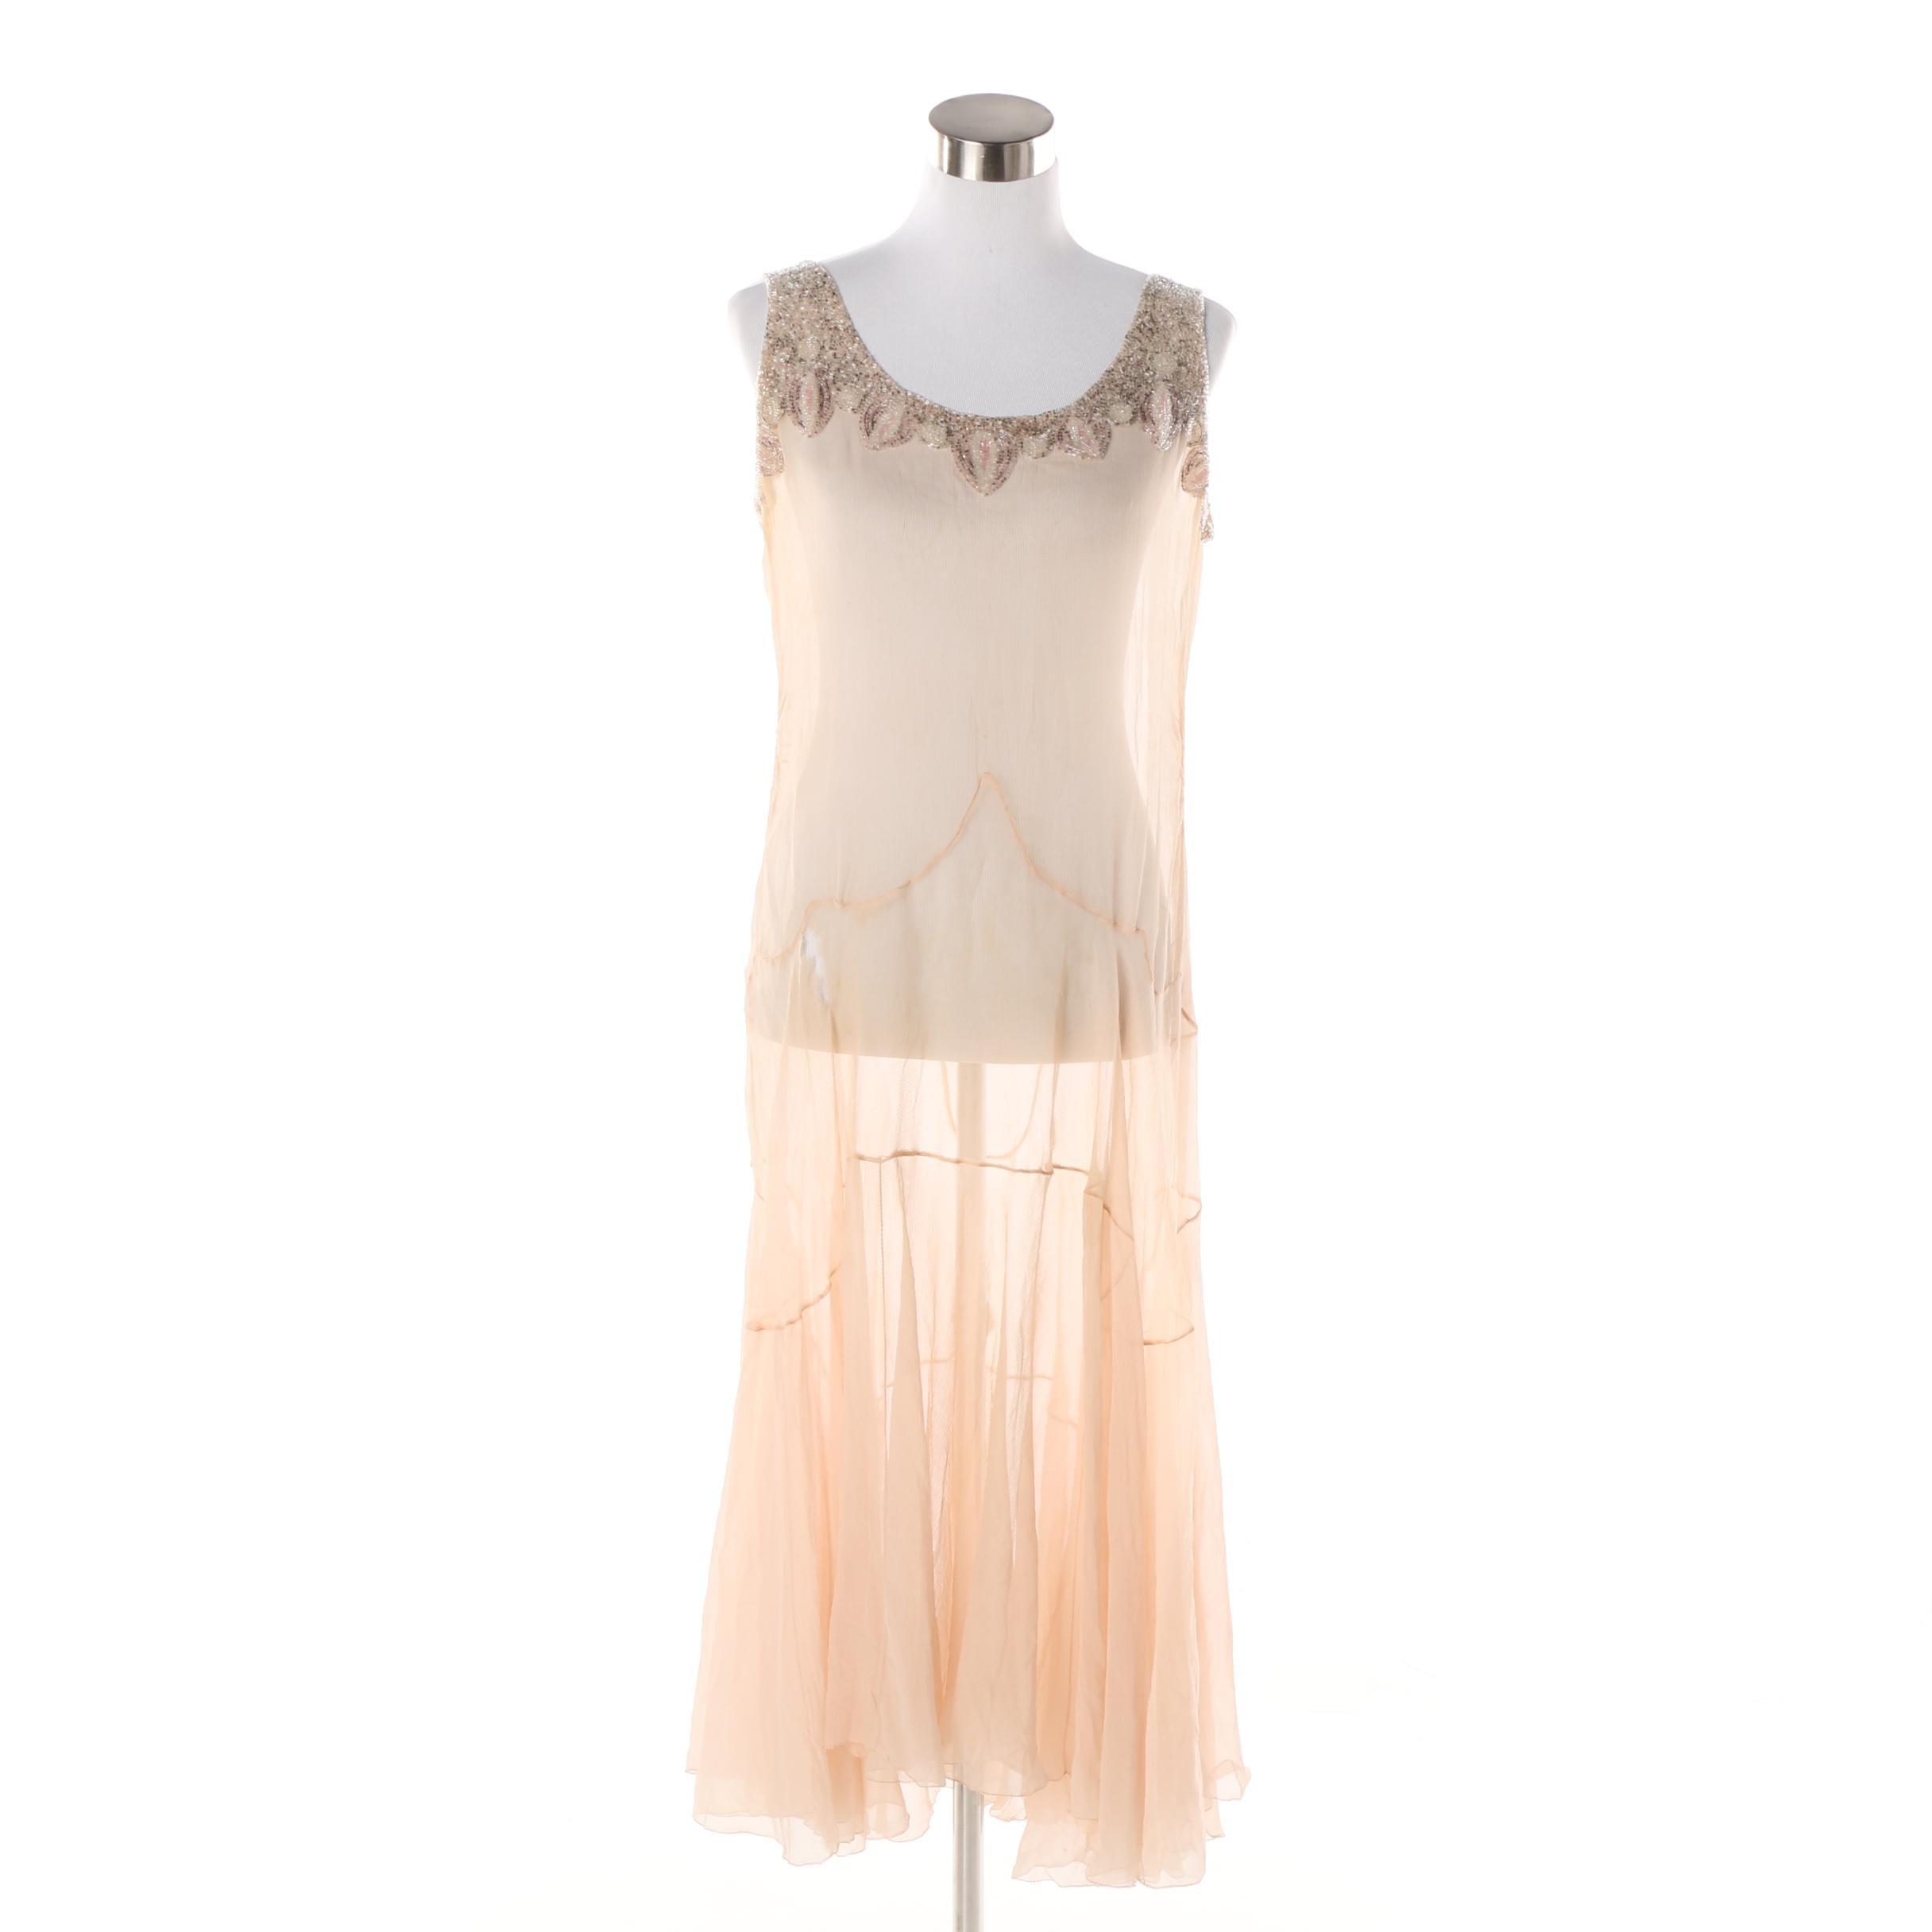 Circa 1920s Vintage Art Deco Sheer Silk Dress with Hand Beaded Accents